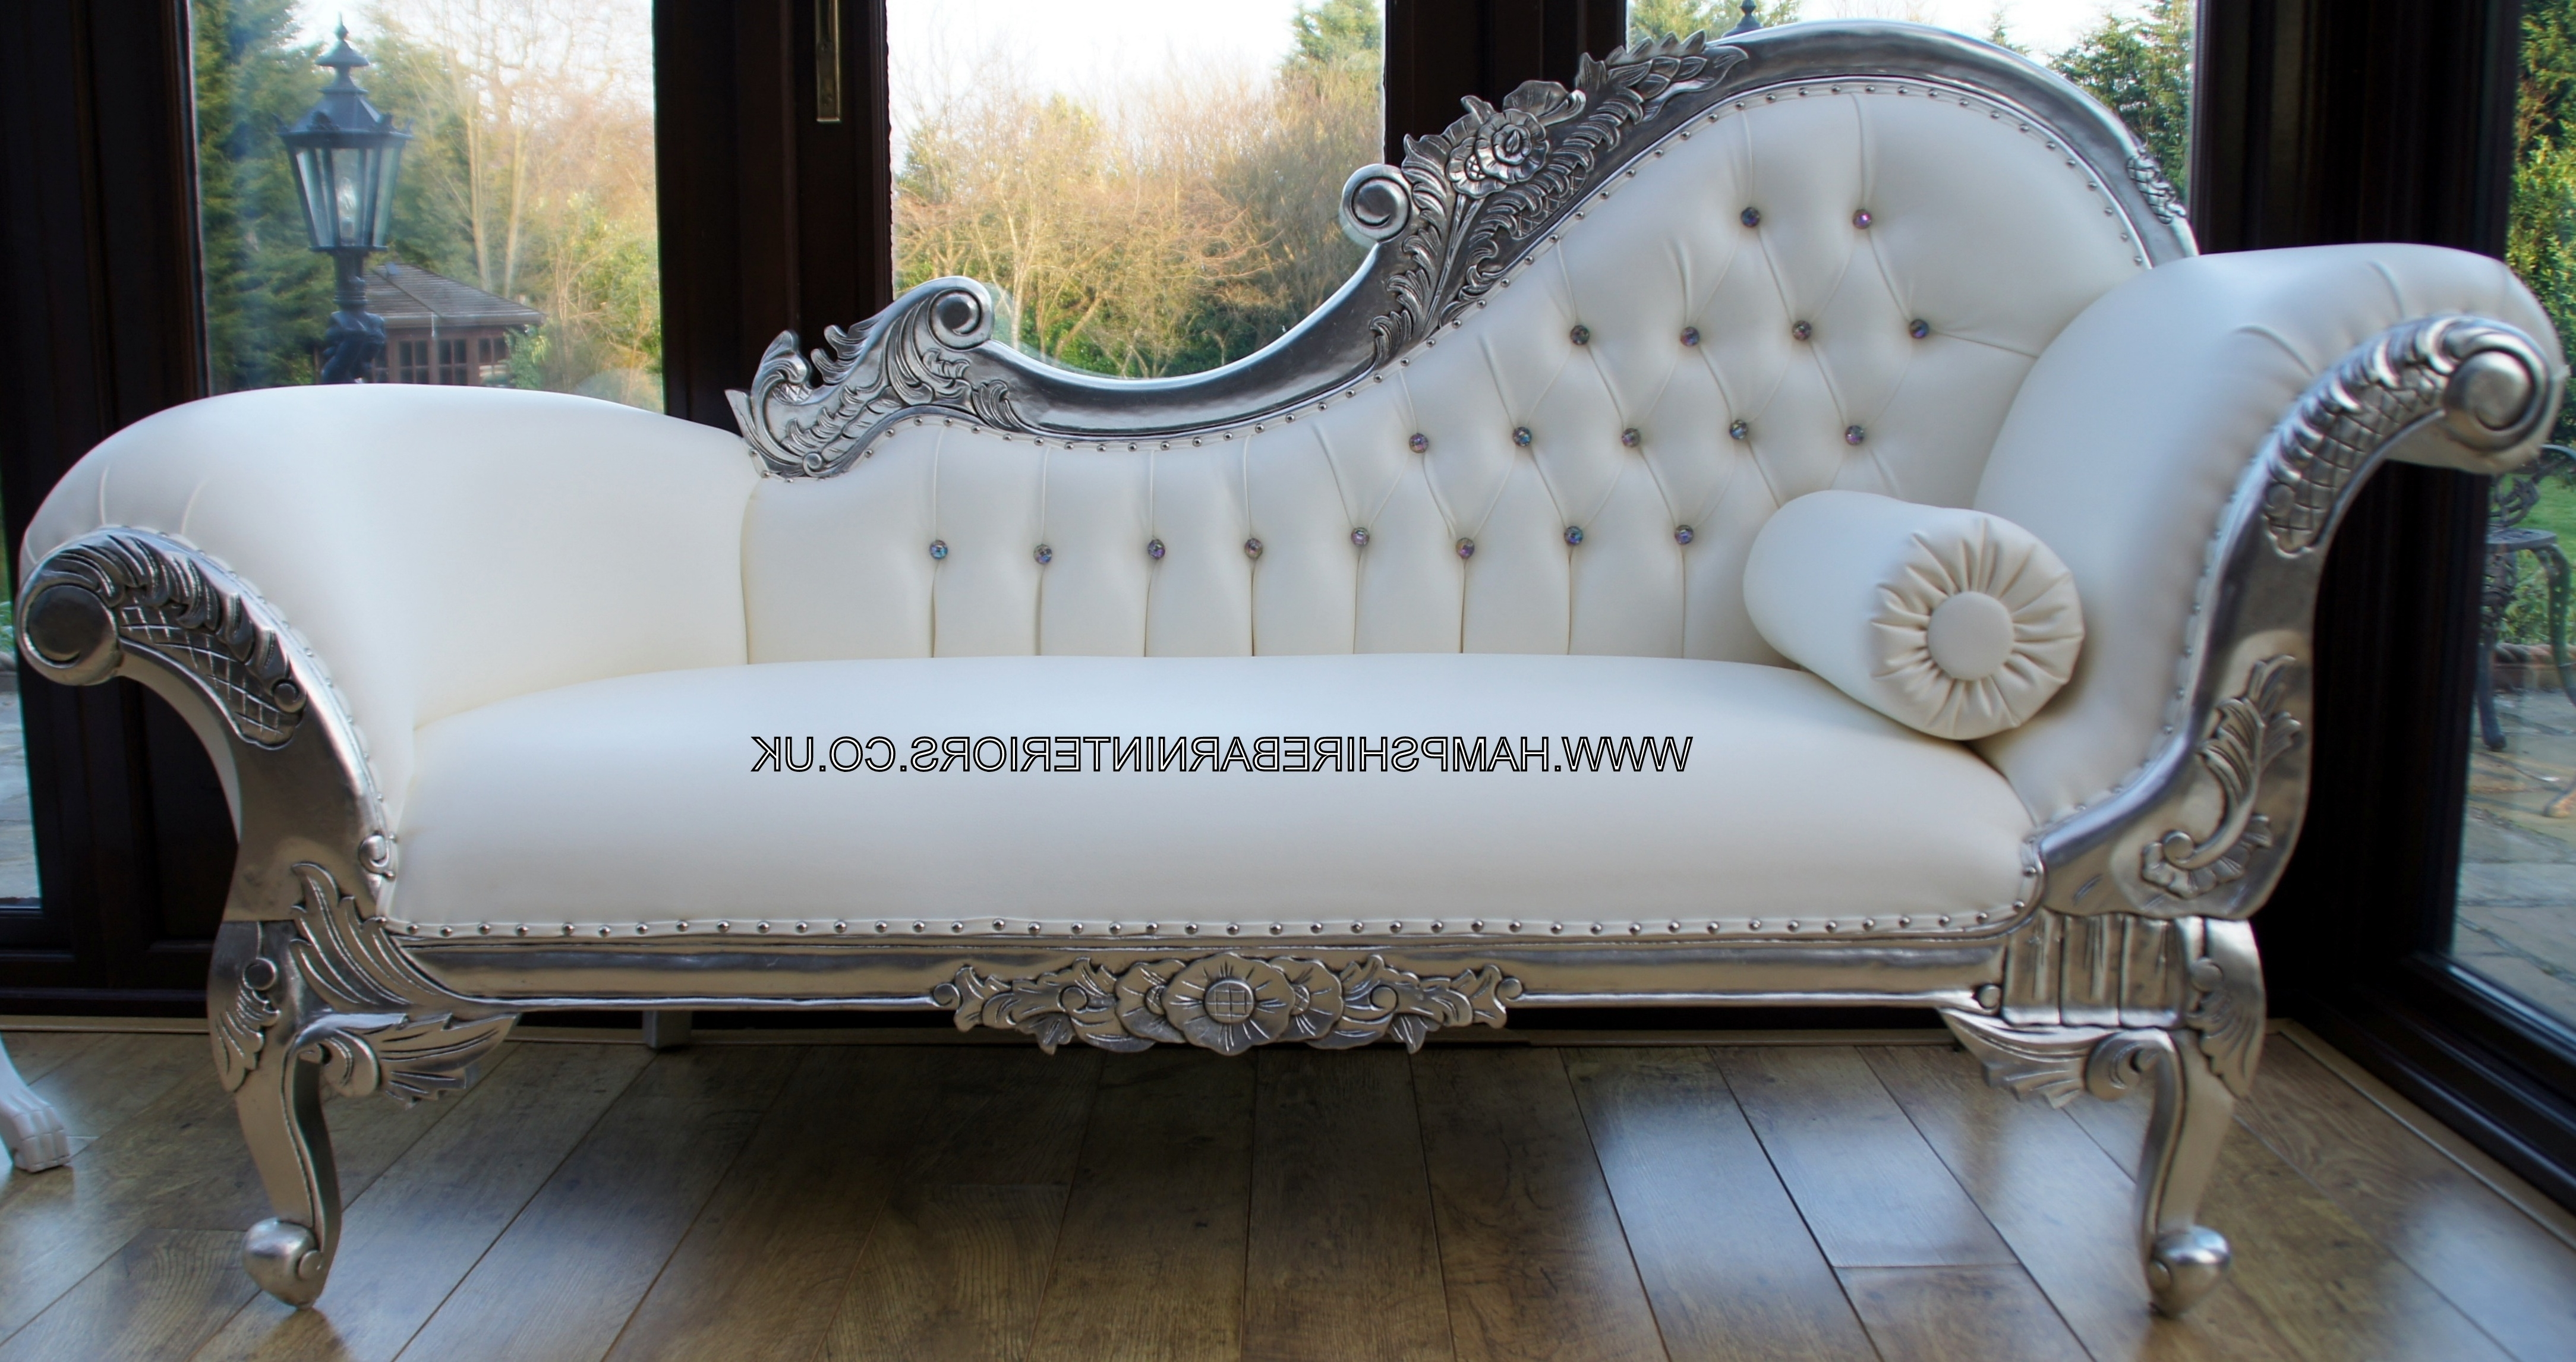 Recent White Chaise Lounge Chairs Pertaining To Convertible Chair : Furniture Patio Furniture White Pool Chairs (View 8 of 15)